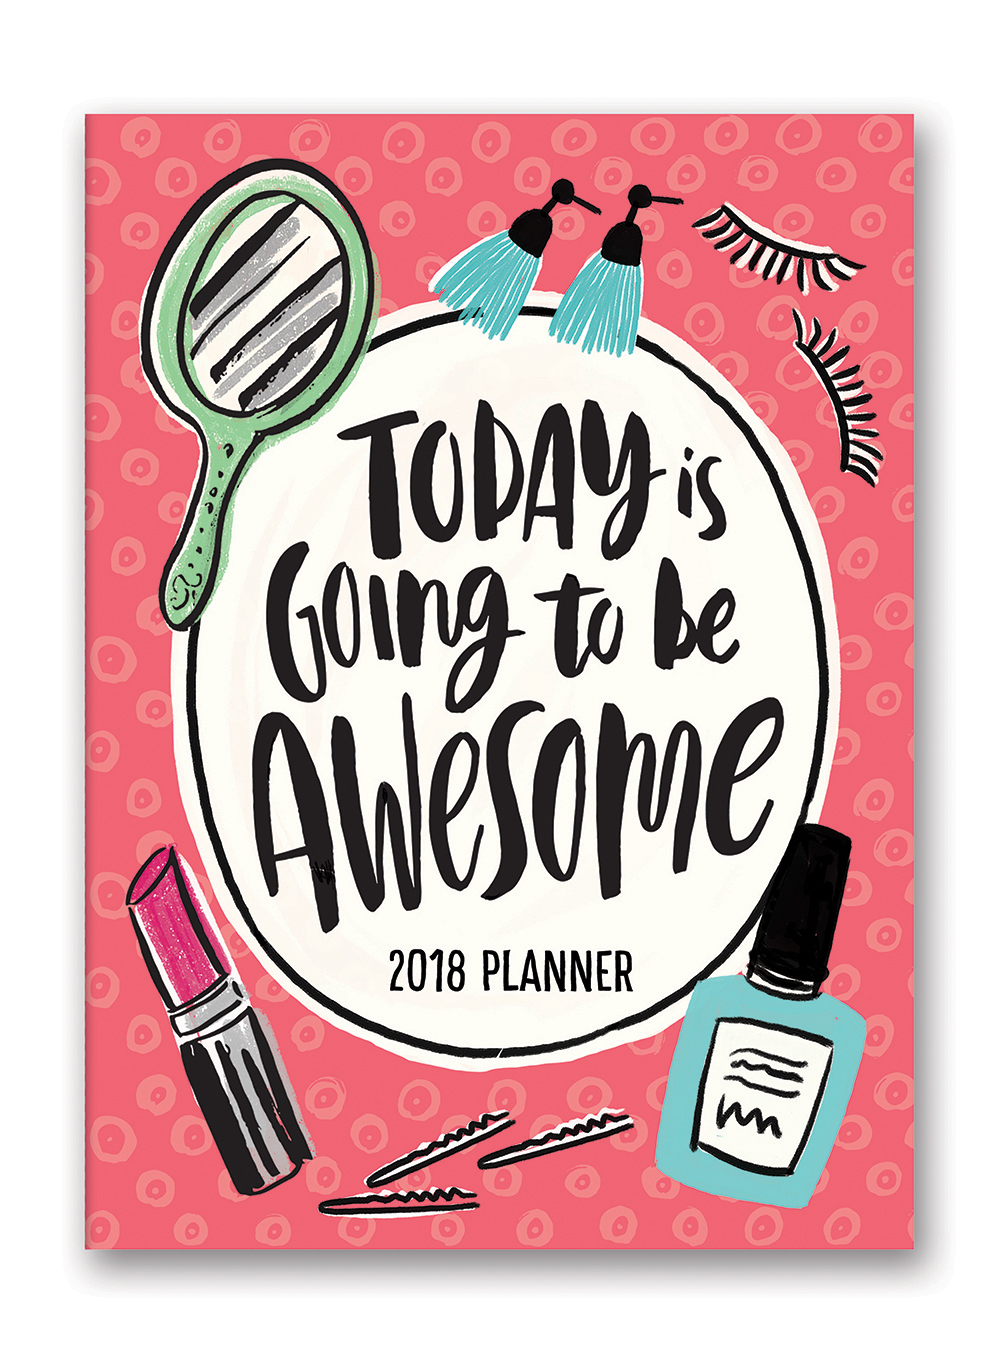 Today Is Going to Be Awesome Take Me With You Planner 2018 by Orange Circle Studio 9781682582237